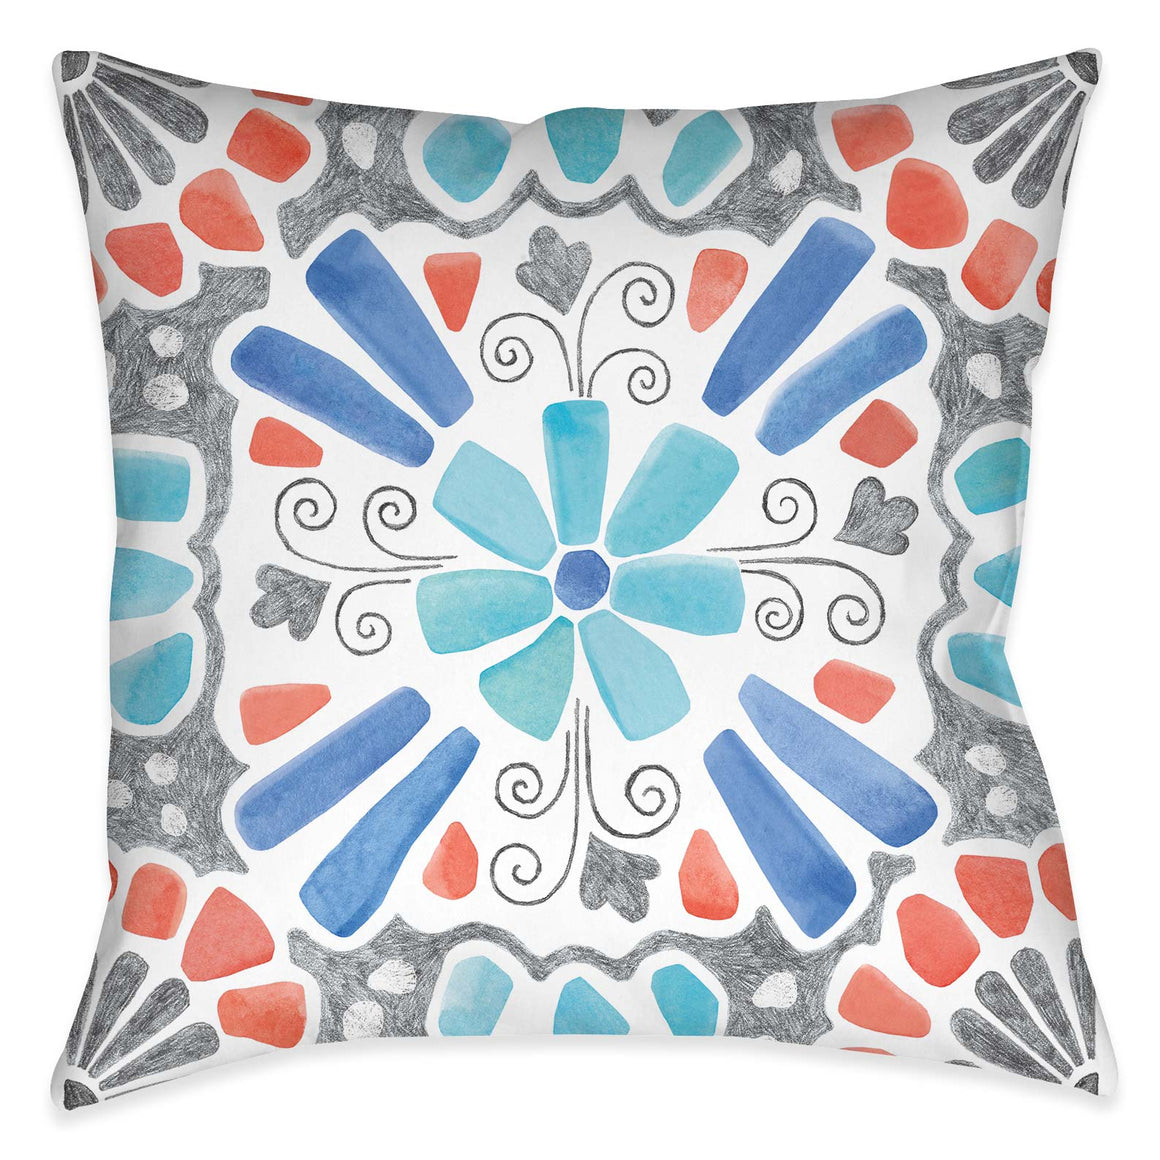 "The ""Coastal Mosaic III Outdoor Decorative Pillow"" features a modern must-have mosaic design. The eclectic balance of coral, aqua and grey colors exposes its artistic rendering giving it a unique flare inspired by traditional mosaic tile designs."